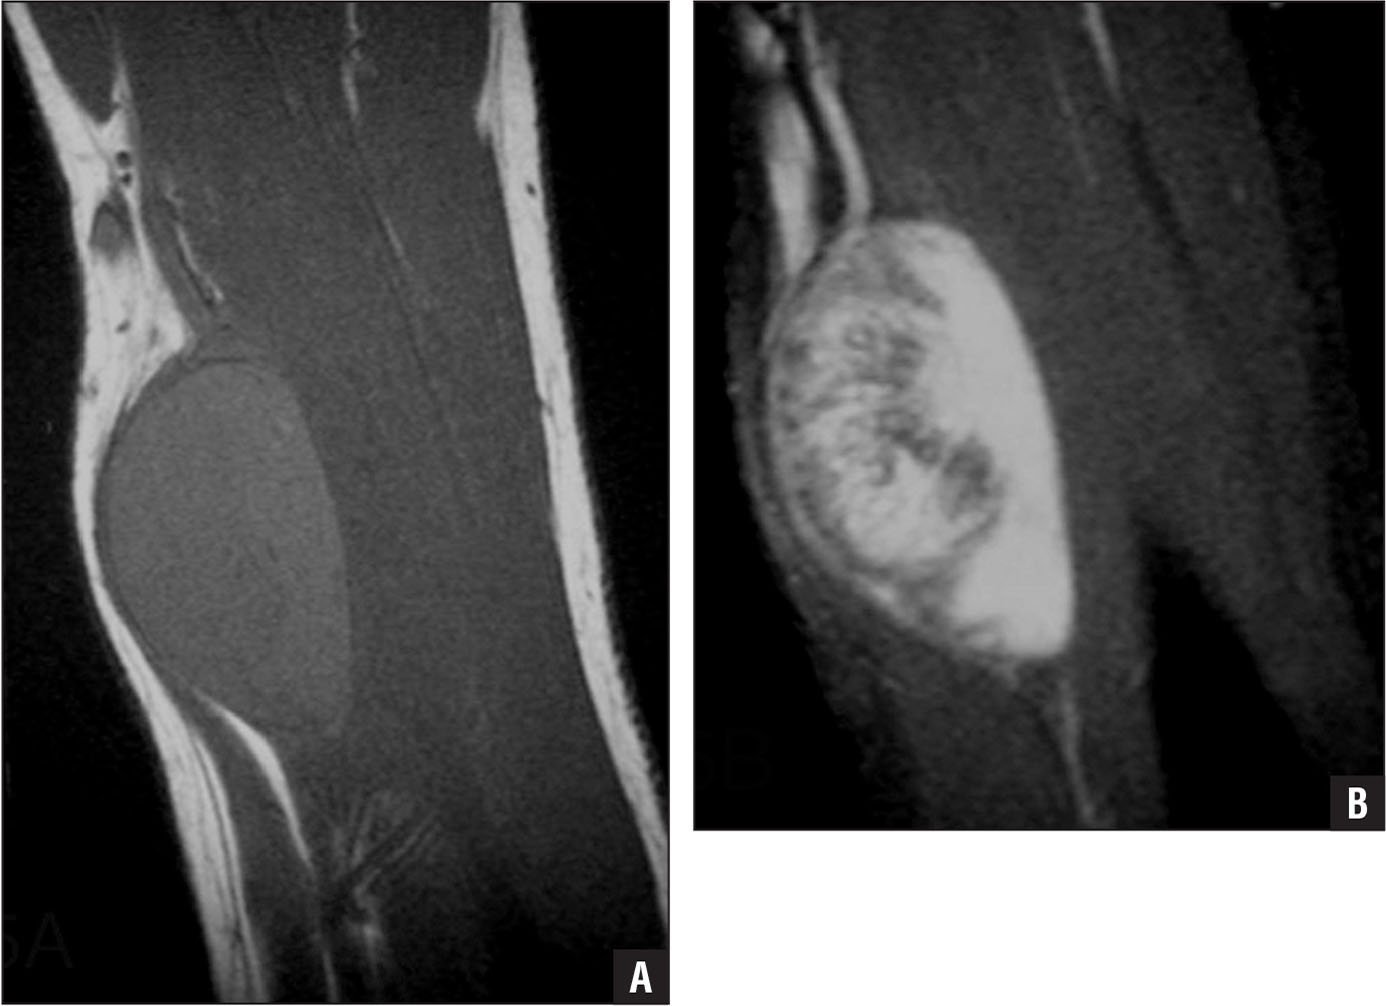 Preoperative sagittal T1-weighted (A) and T2-weighted (B) magnetic resonance images of a schwannoma. A nerve can be seen entering and exiting the mass.